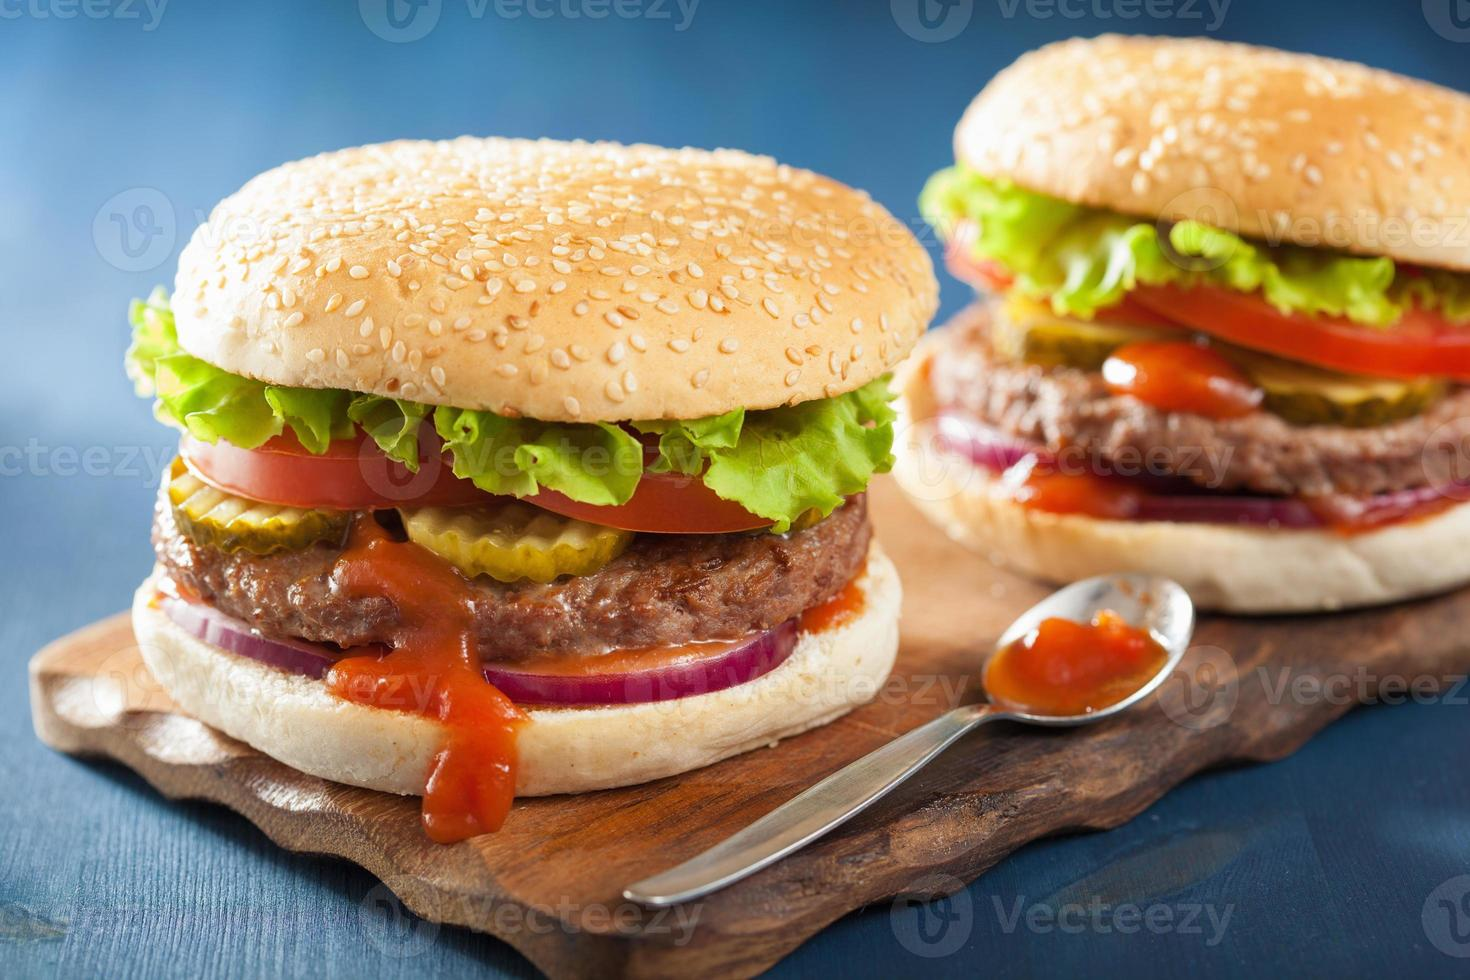 burger with beef patty lettuce onion tomato ketchup photo